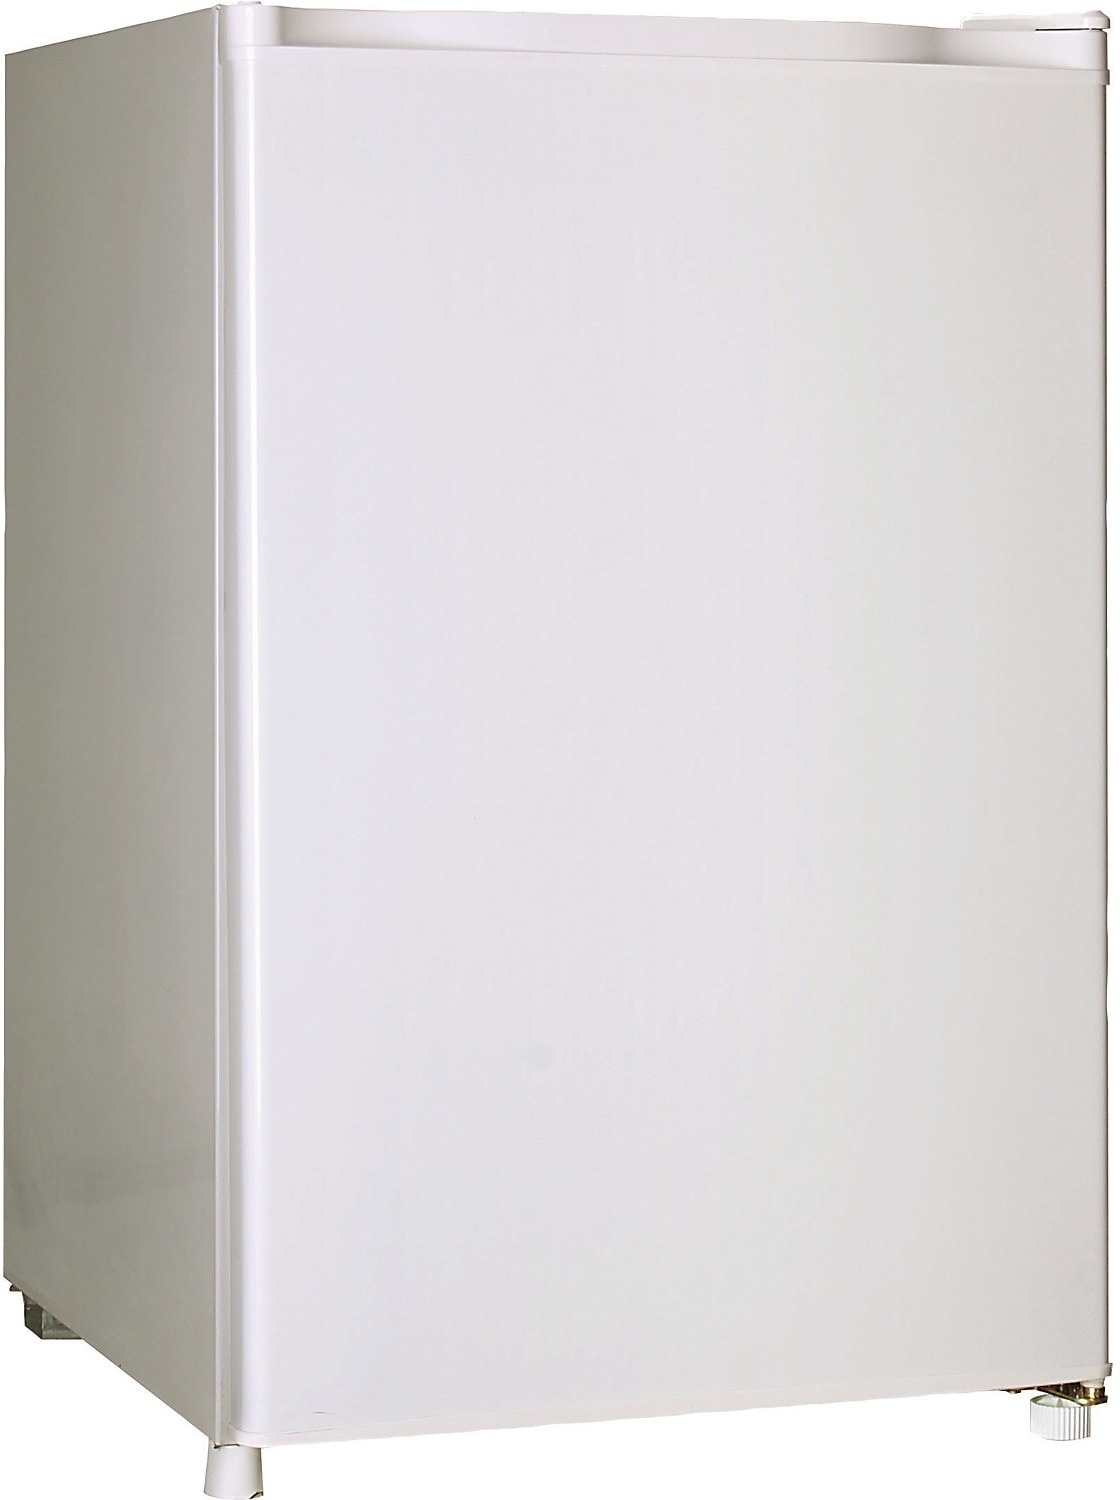 Refrigerators and Freezers - Igloo 4.5 Cu. Ft. Compact Refrigerator - White